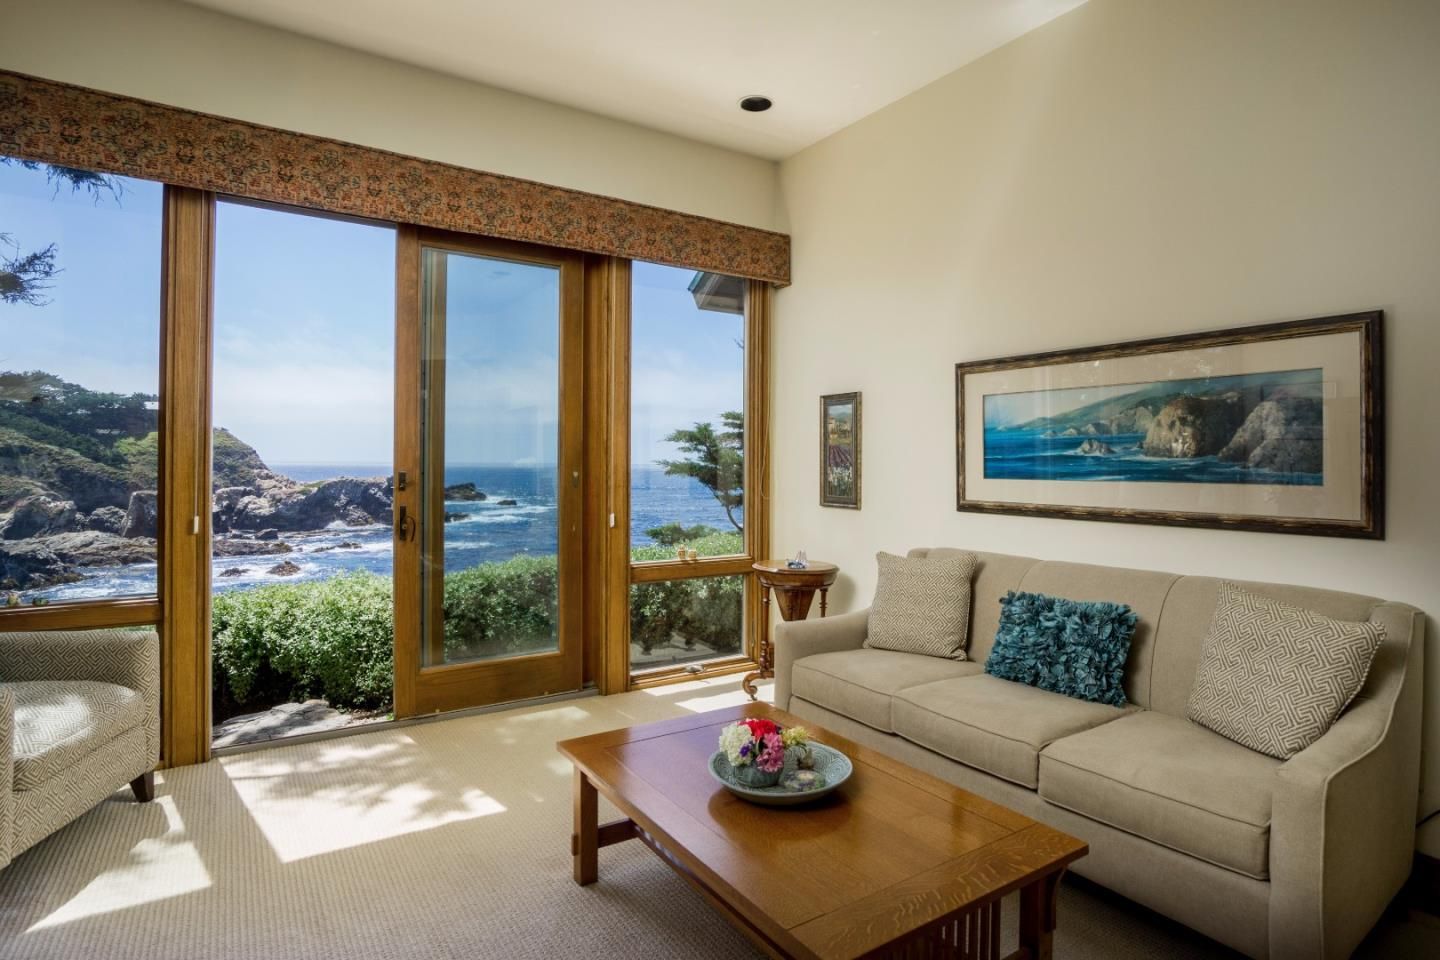 Additional photo for property listing at 166 Spindrift Road  Carmel, Kalifornien 93923 Vereinigte Staaten